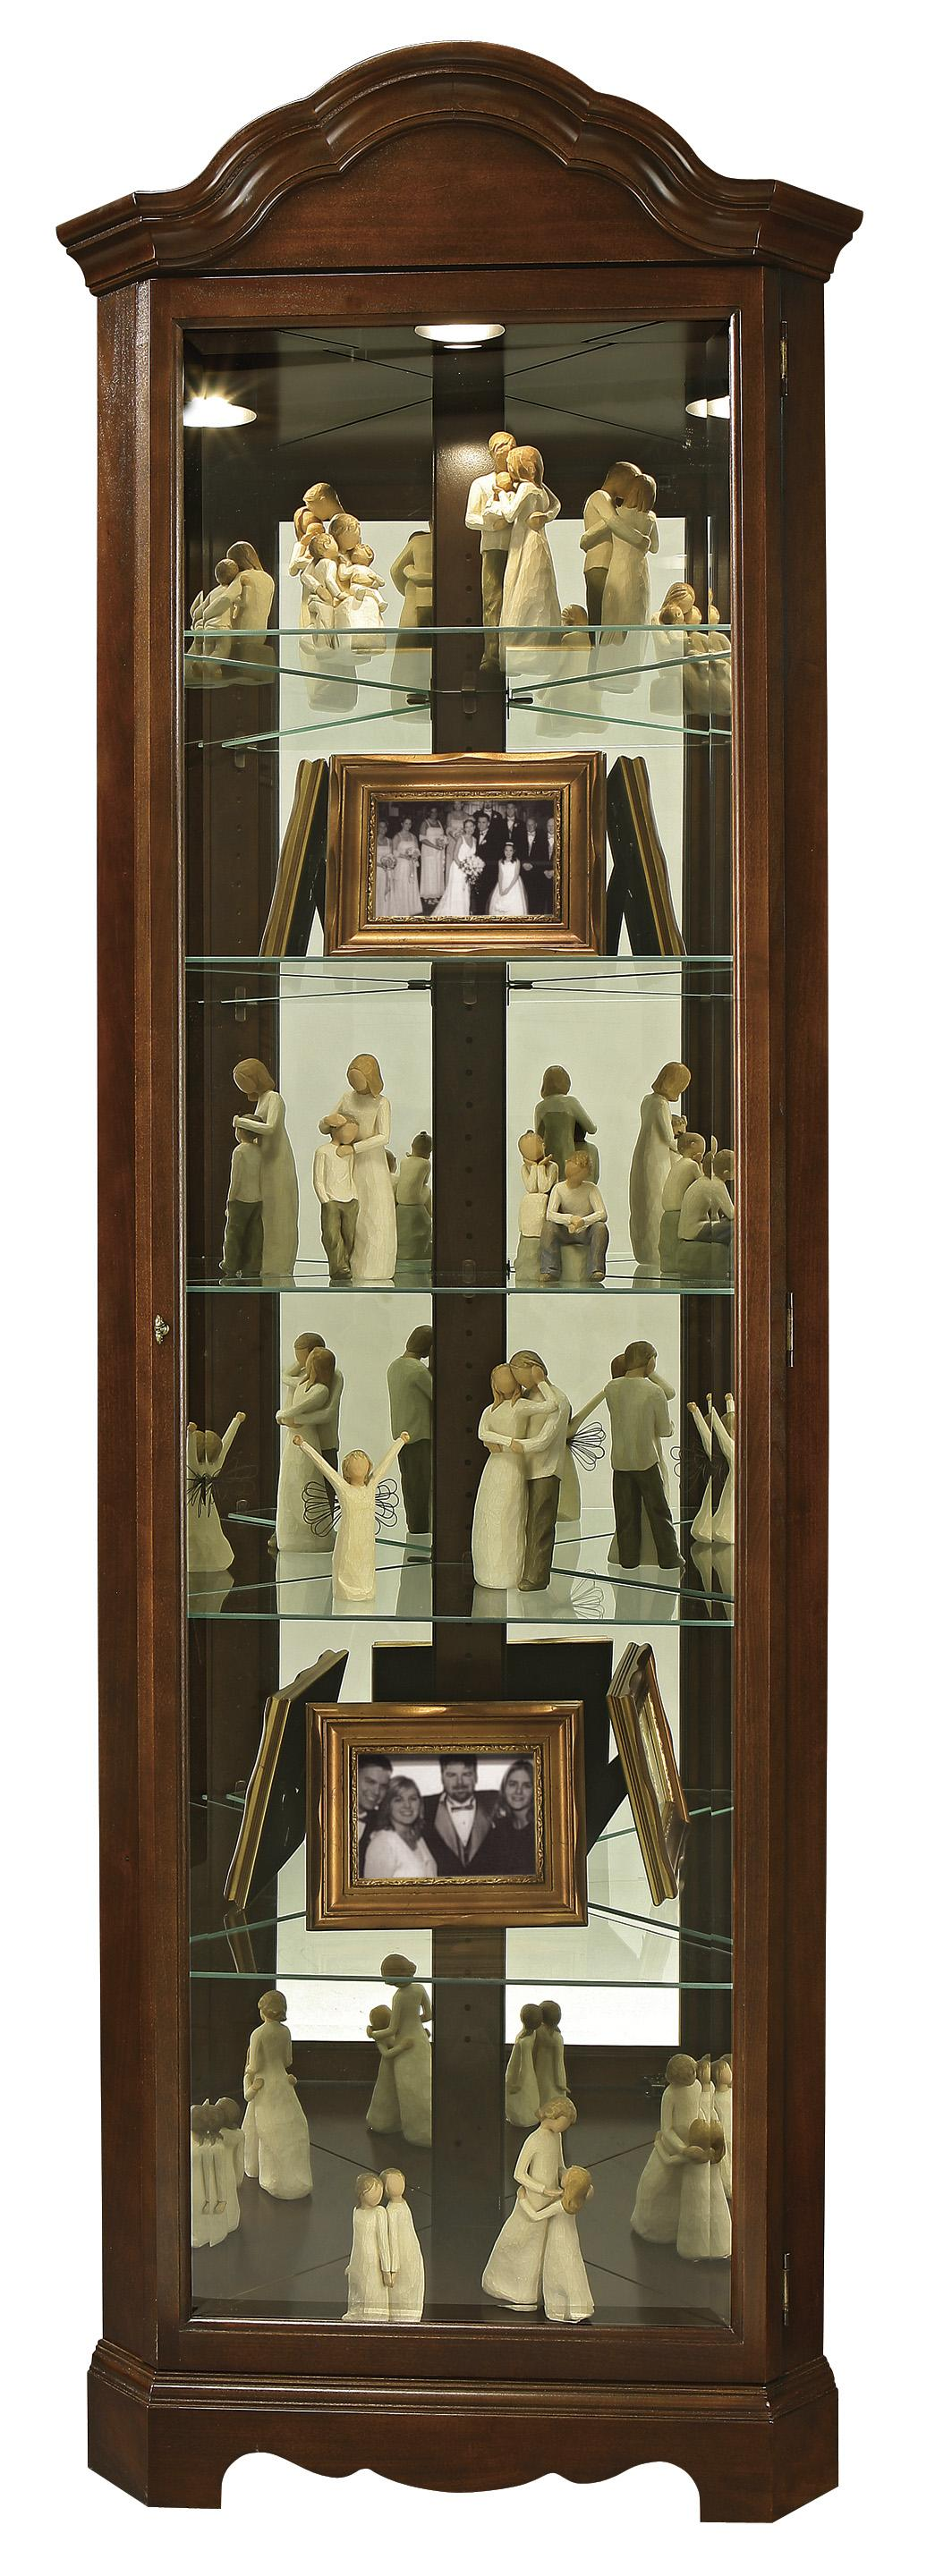 Howard Miller Curios Murphy Display Cabinet - Item Number: 680-495